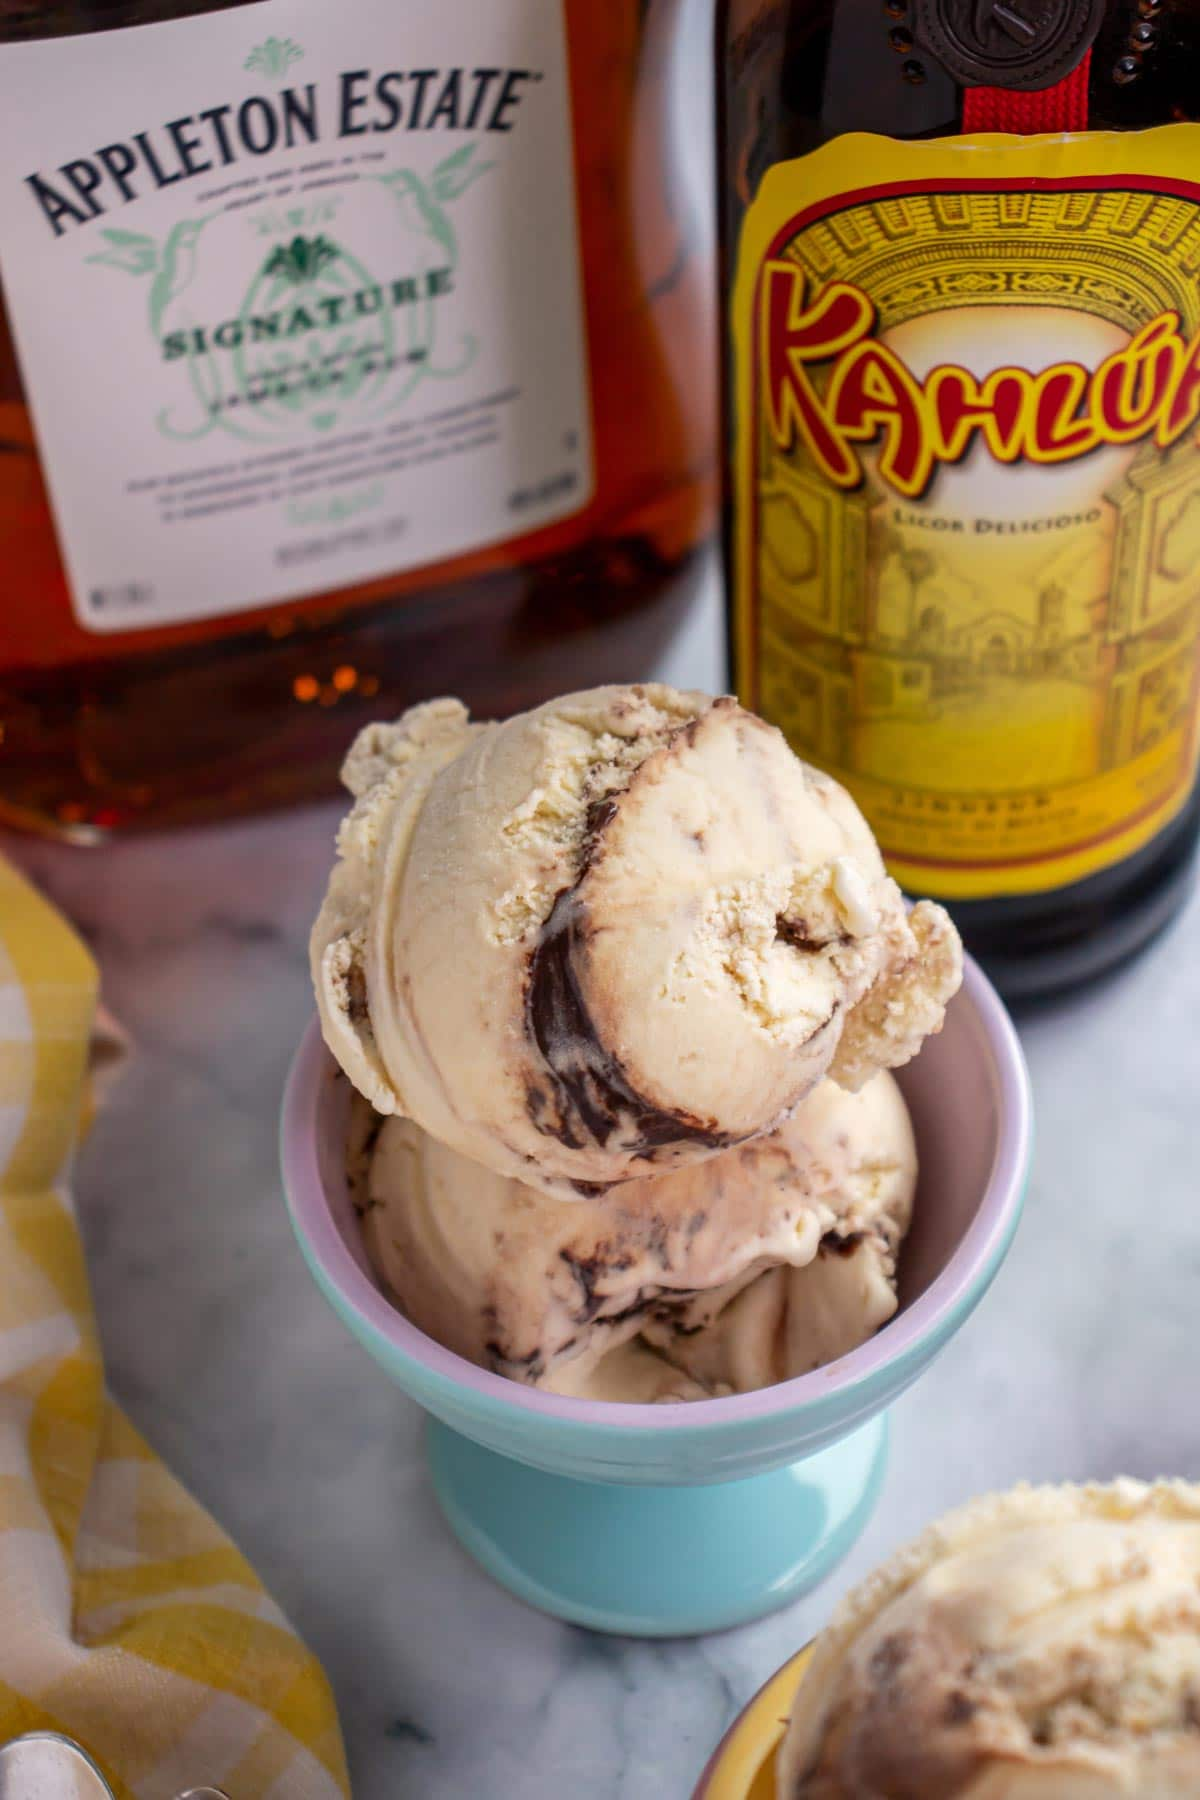 Two scoops of ice cream in a blue ceramic dish with alcohol bottles in the background.